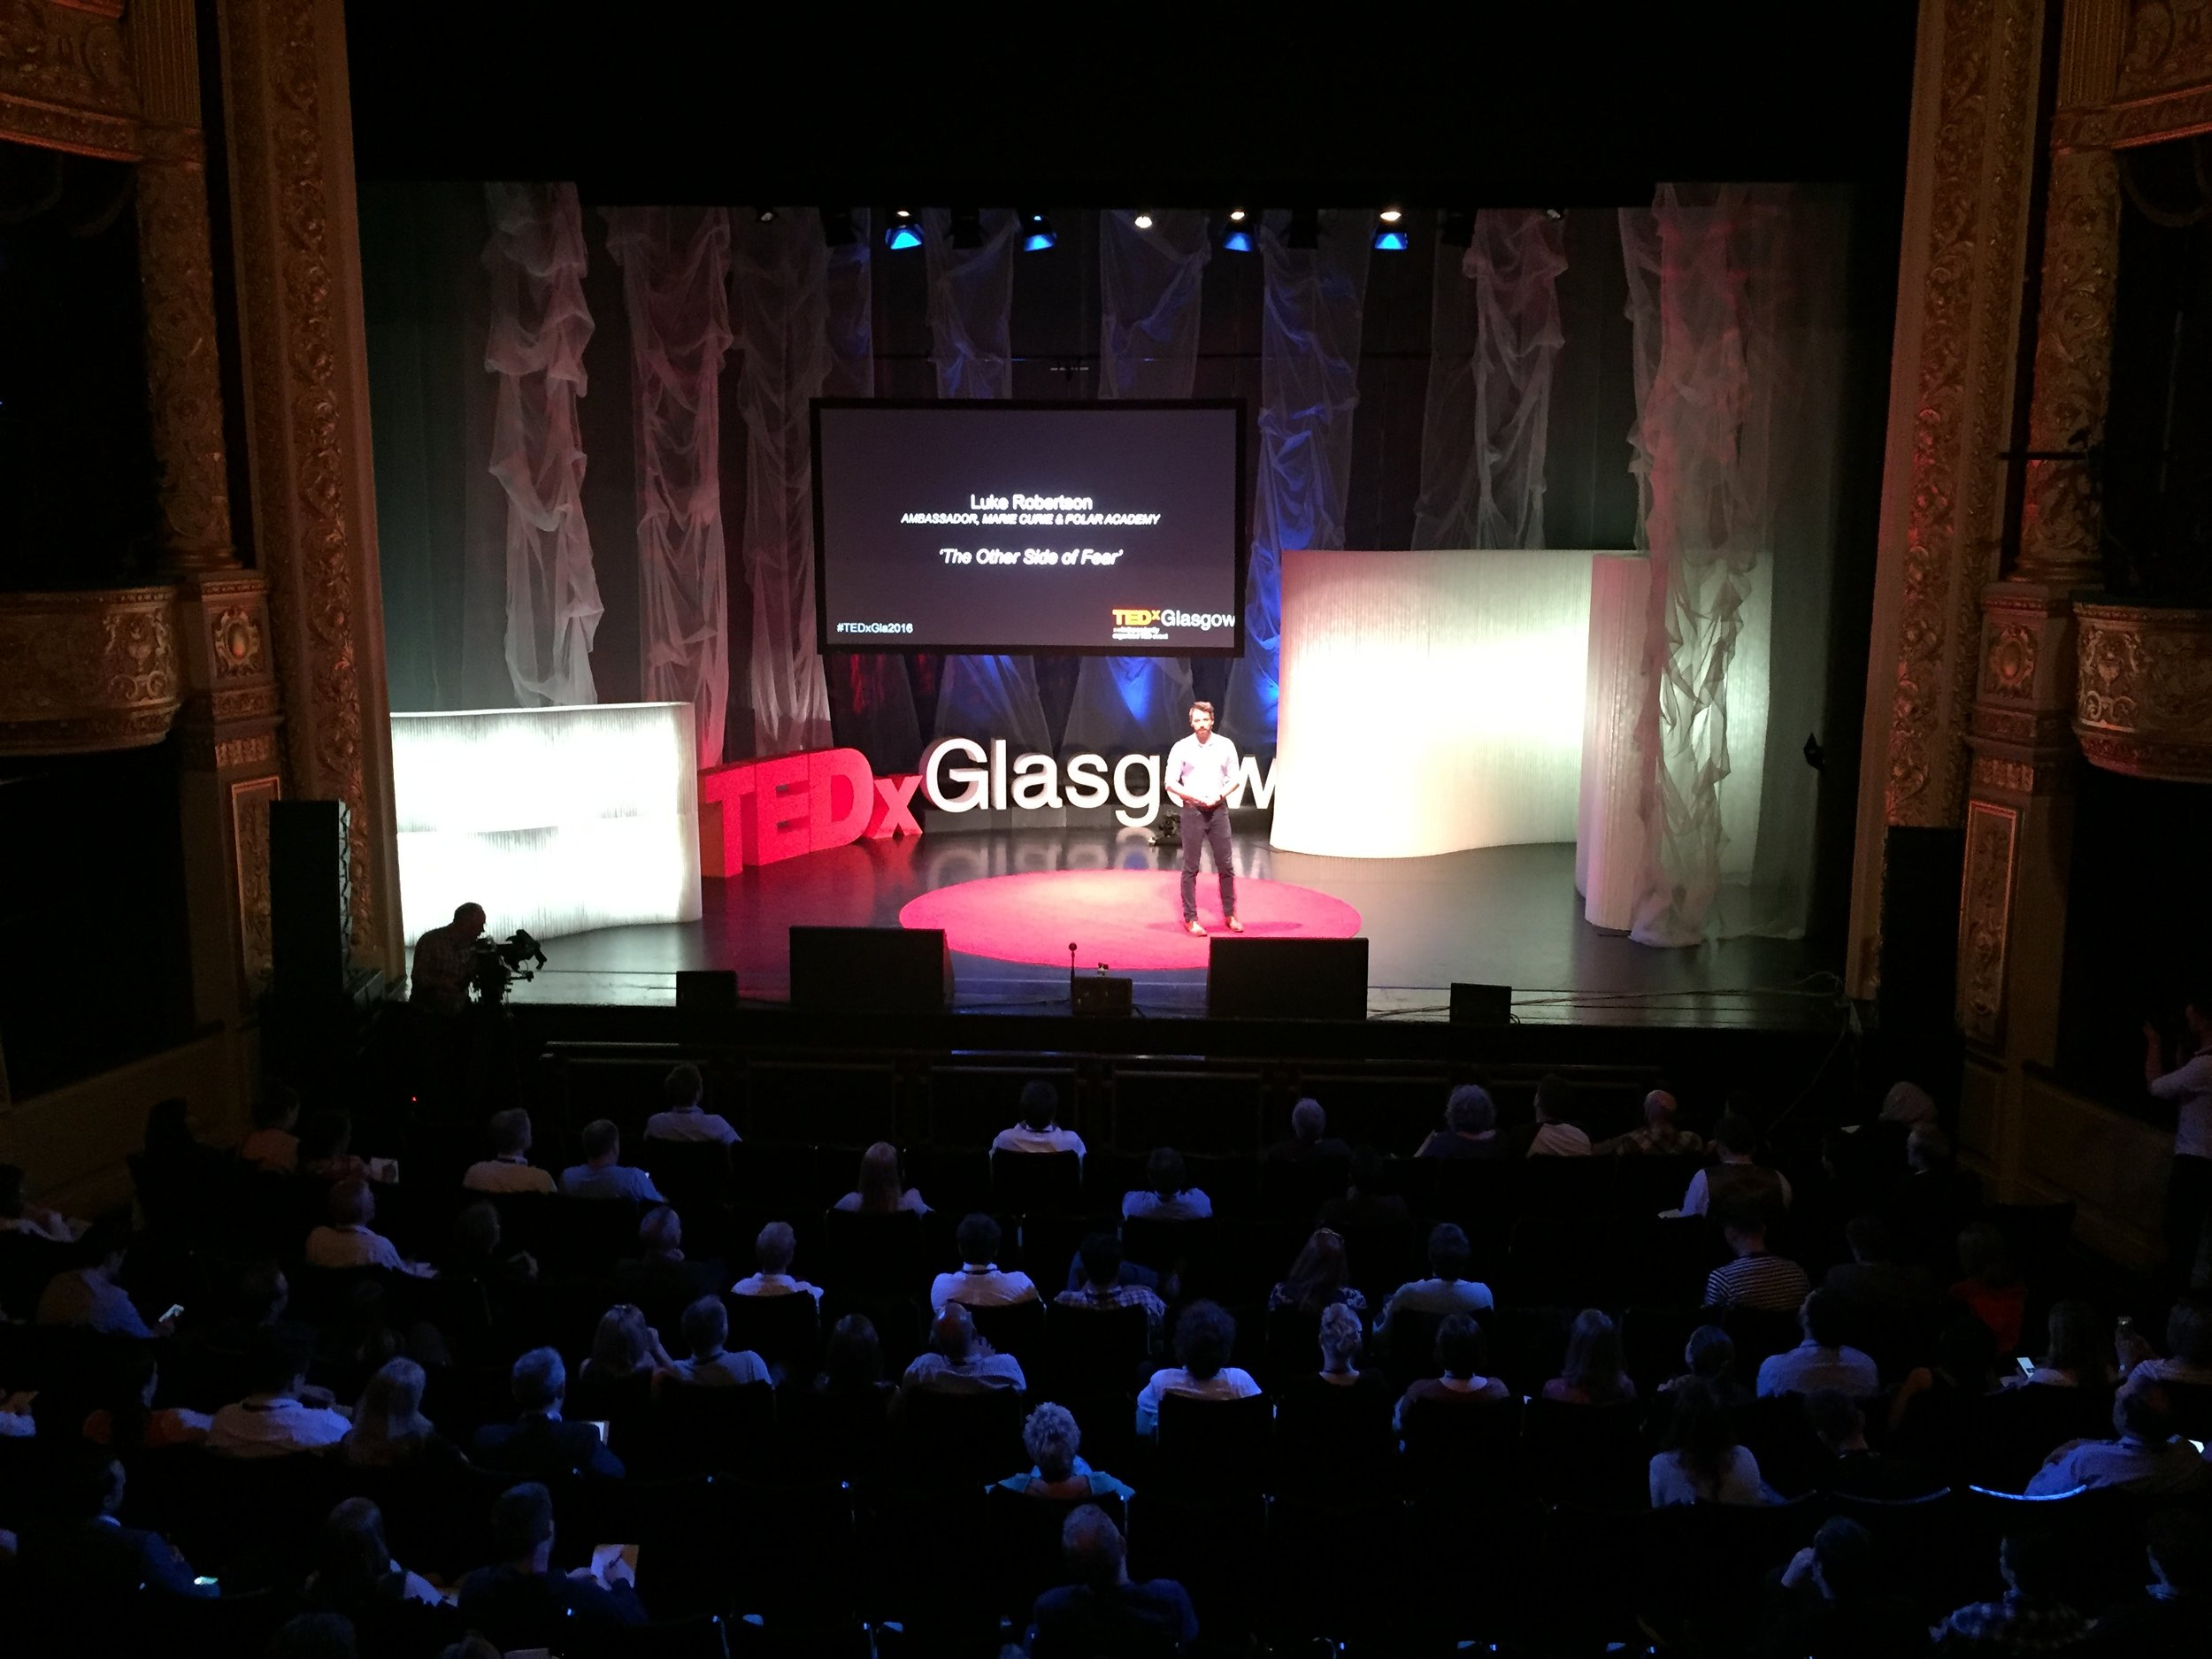 Luke speaking at TEDx Glasgow -  The other side of fear